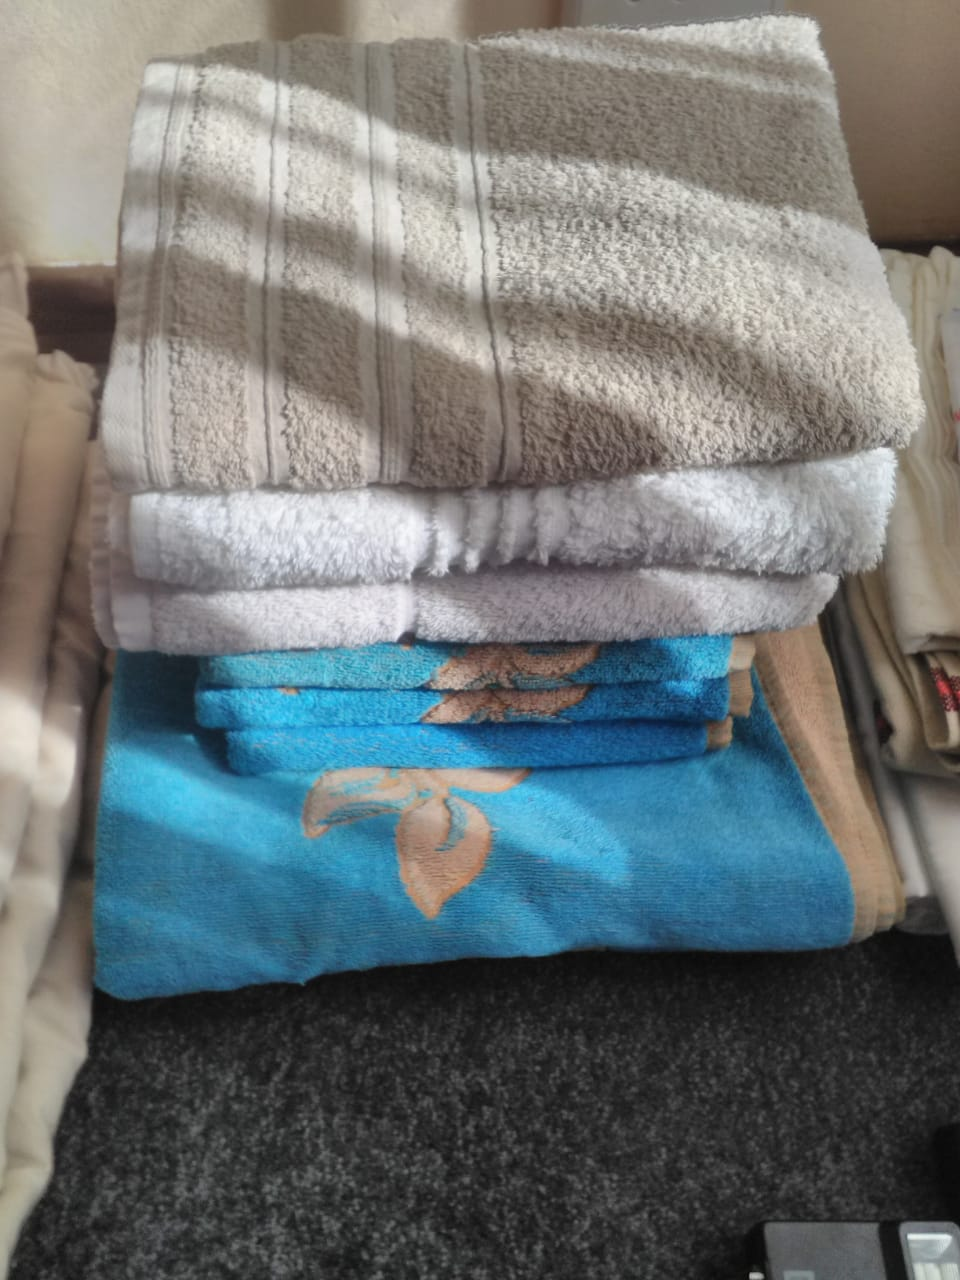 Blue Bathroom towels for sale